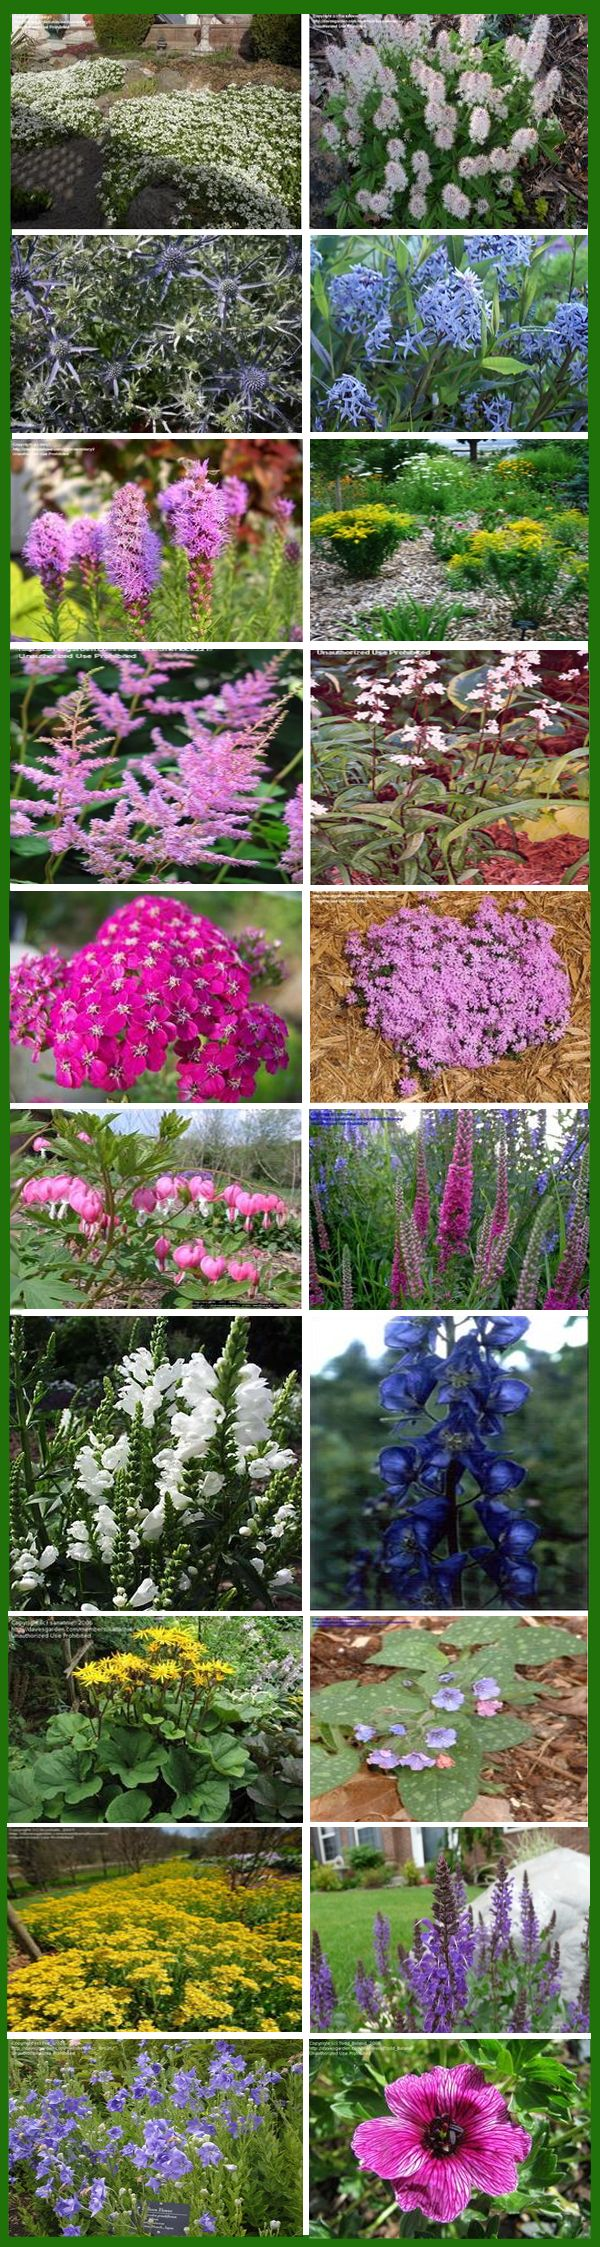 Endless Bloom Perennial Garden: Non-stop flowers from spring ...